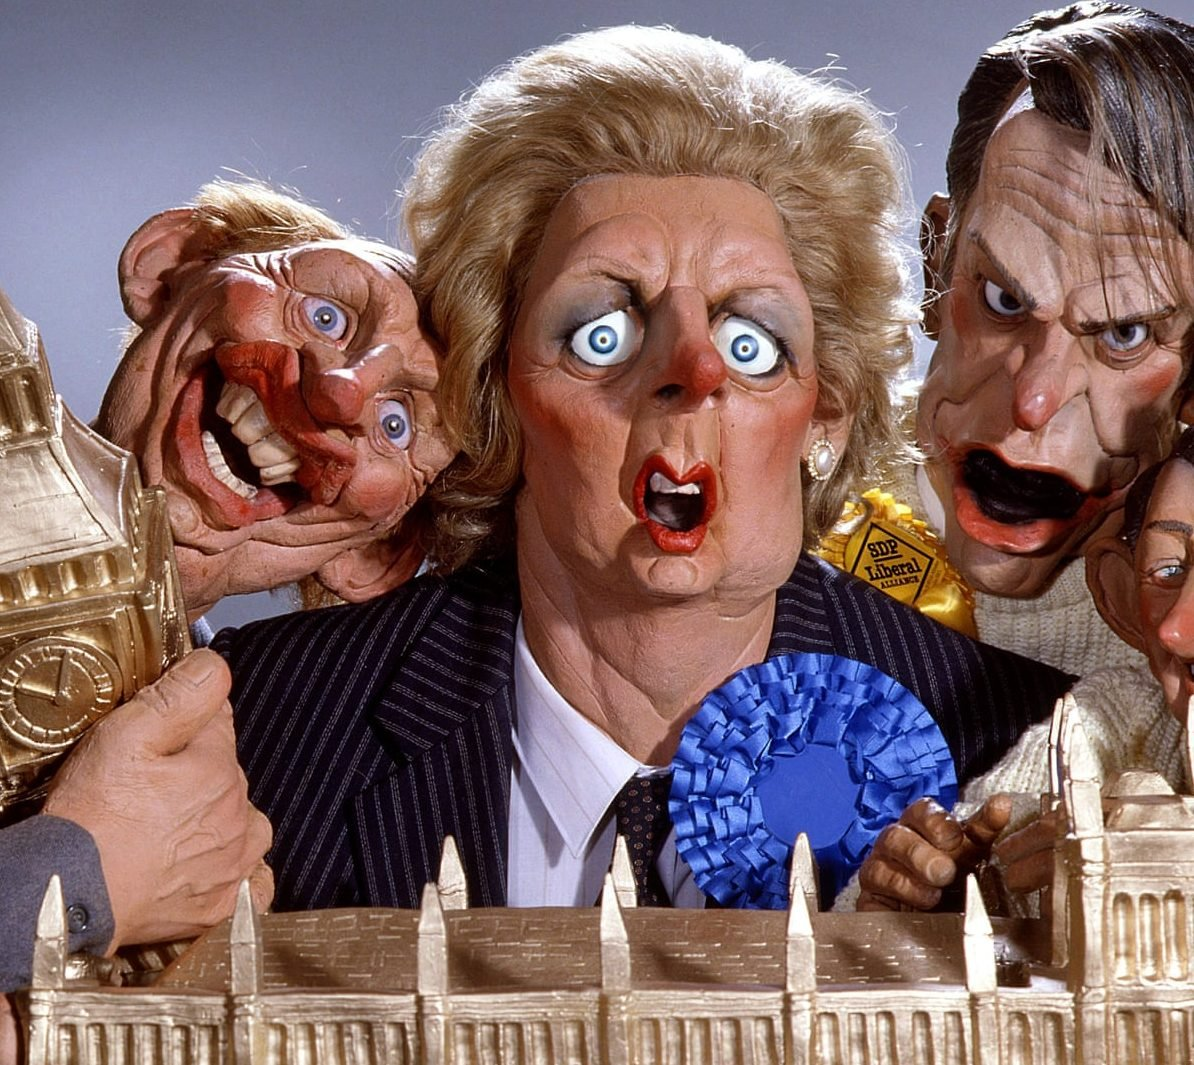 spitting image e1622189648588 12 Classic Comedy Shows From When We Grew Up - Which Was Your Favourite?